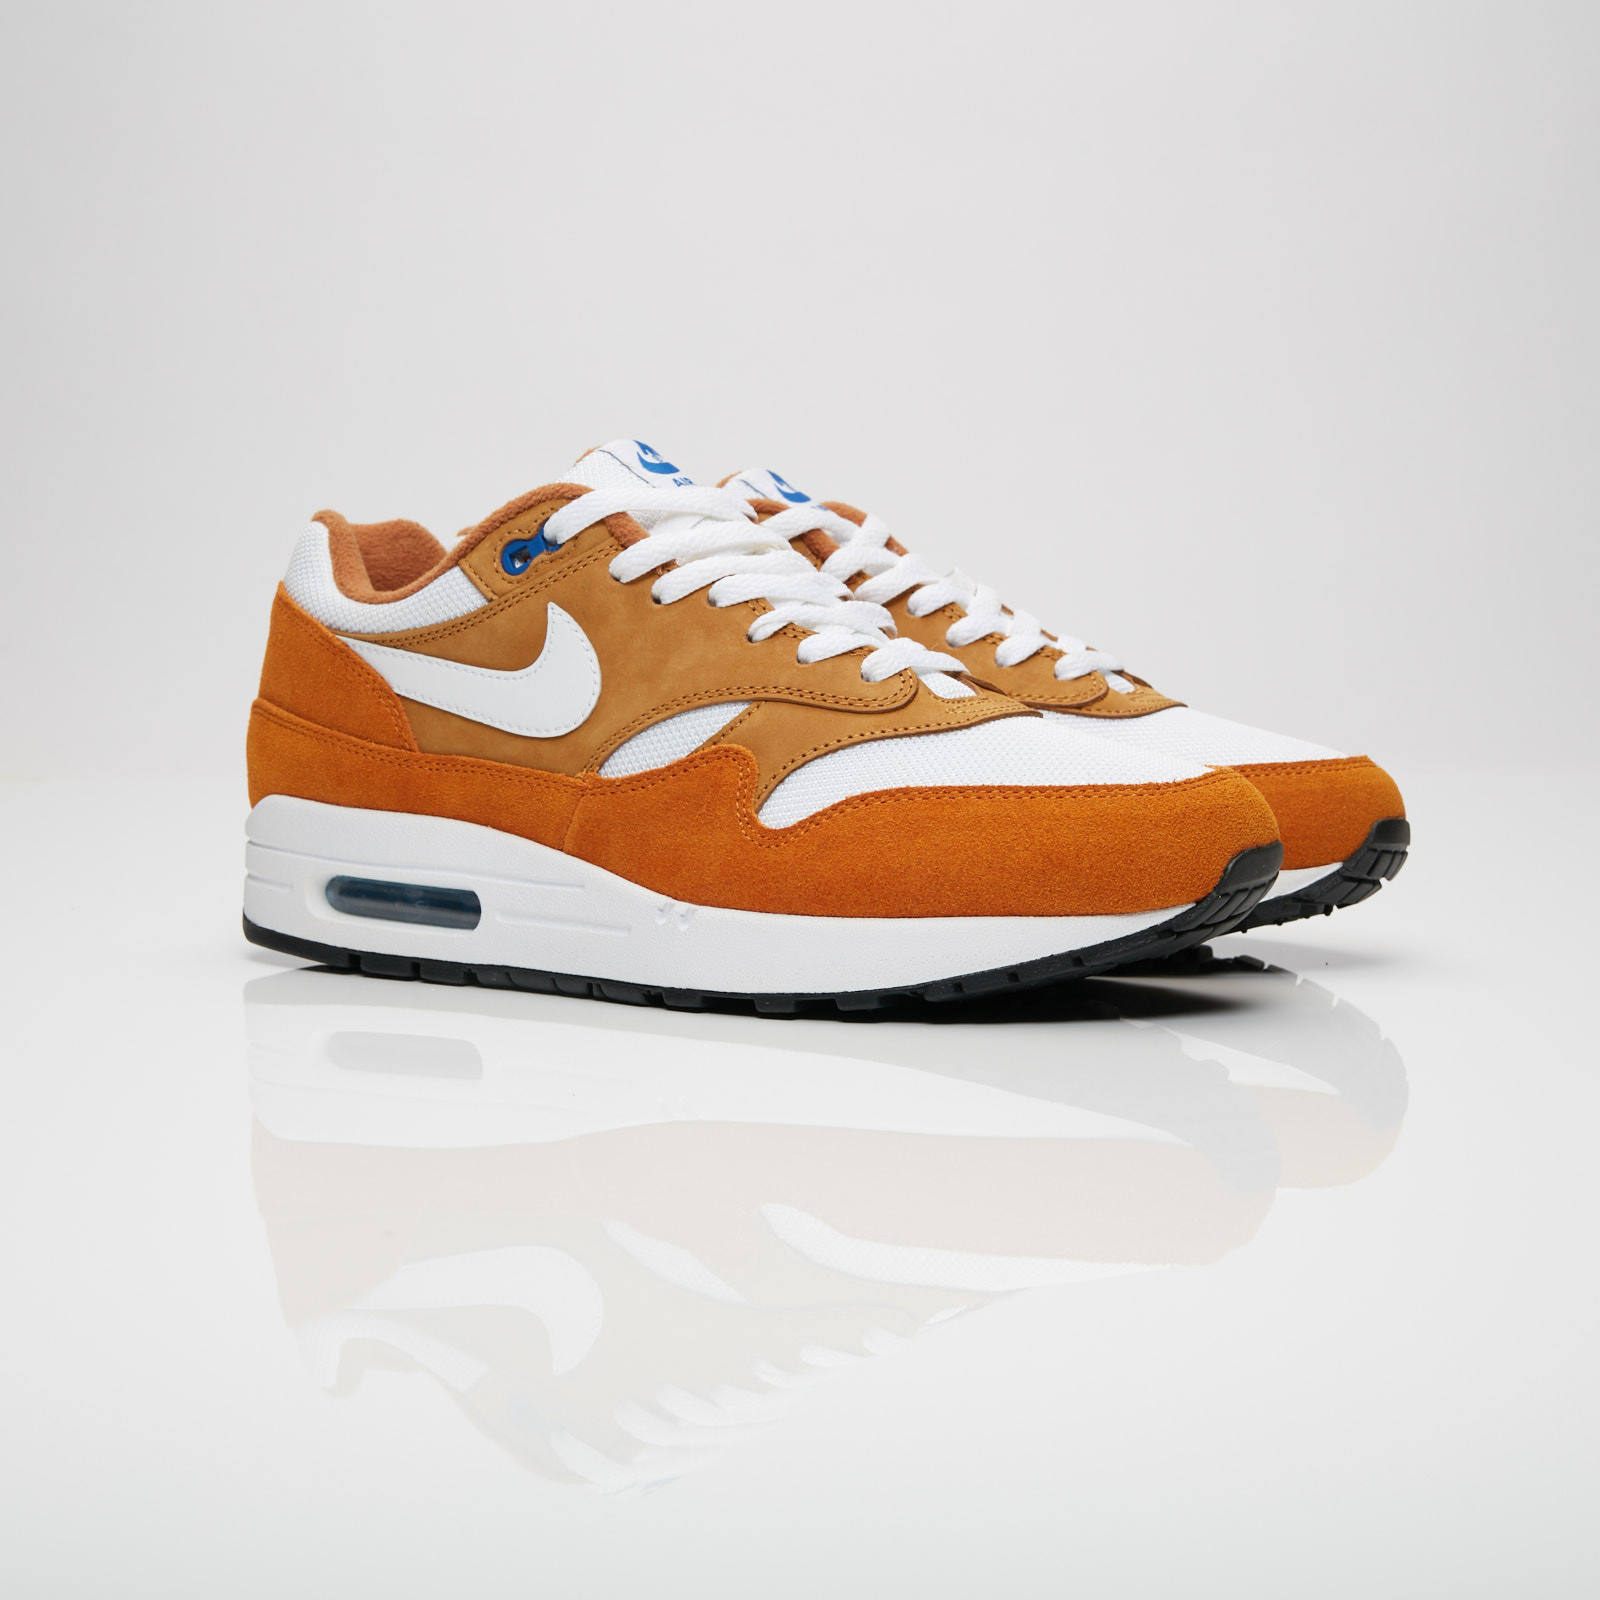 best website c49e4 23488 Nike Sportswear Air Max 1 Premium Retro